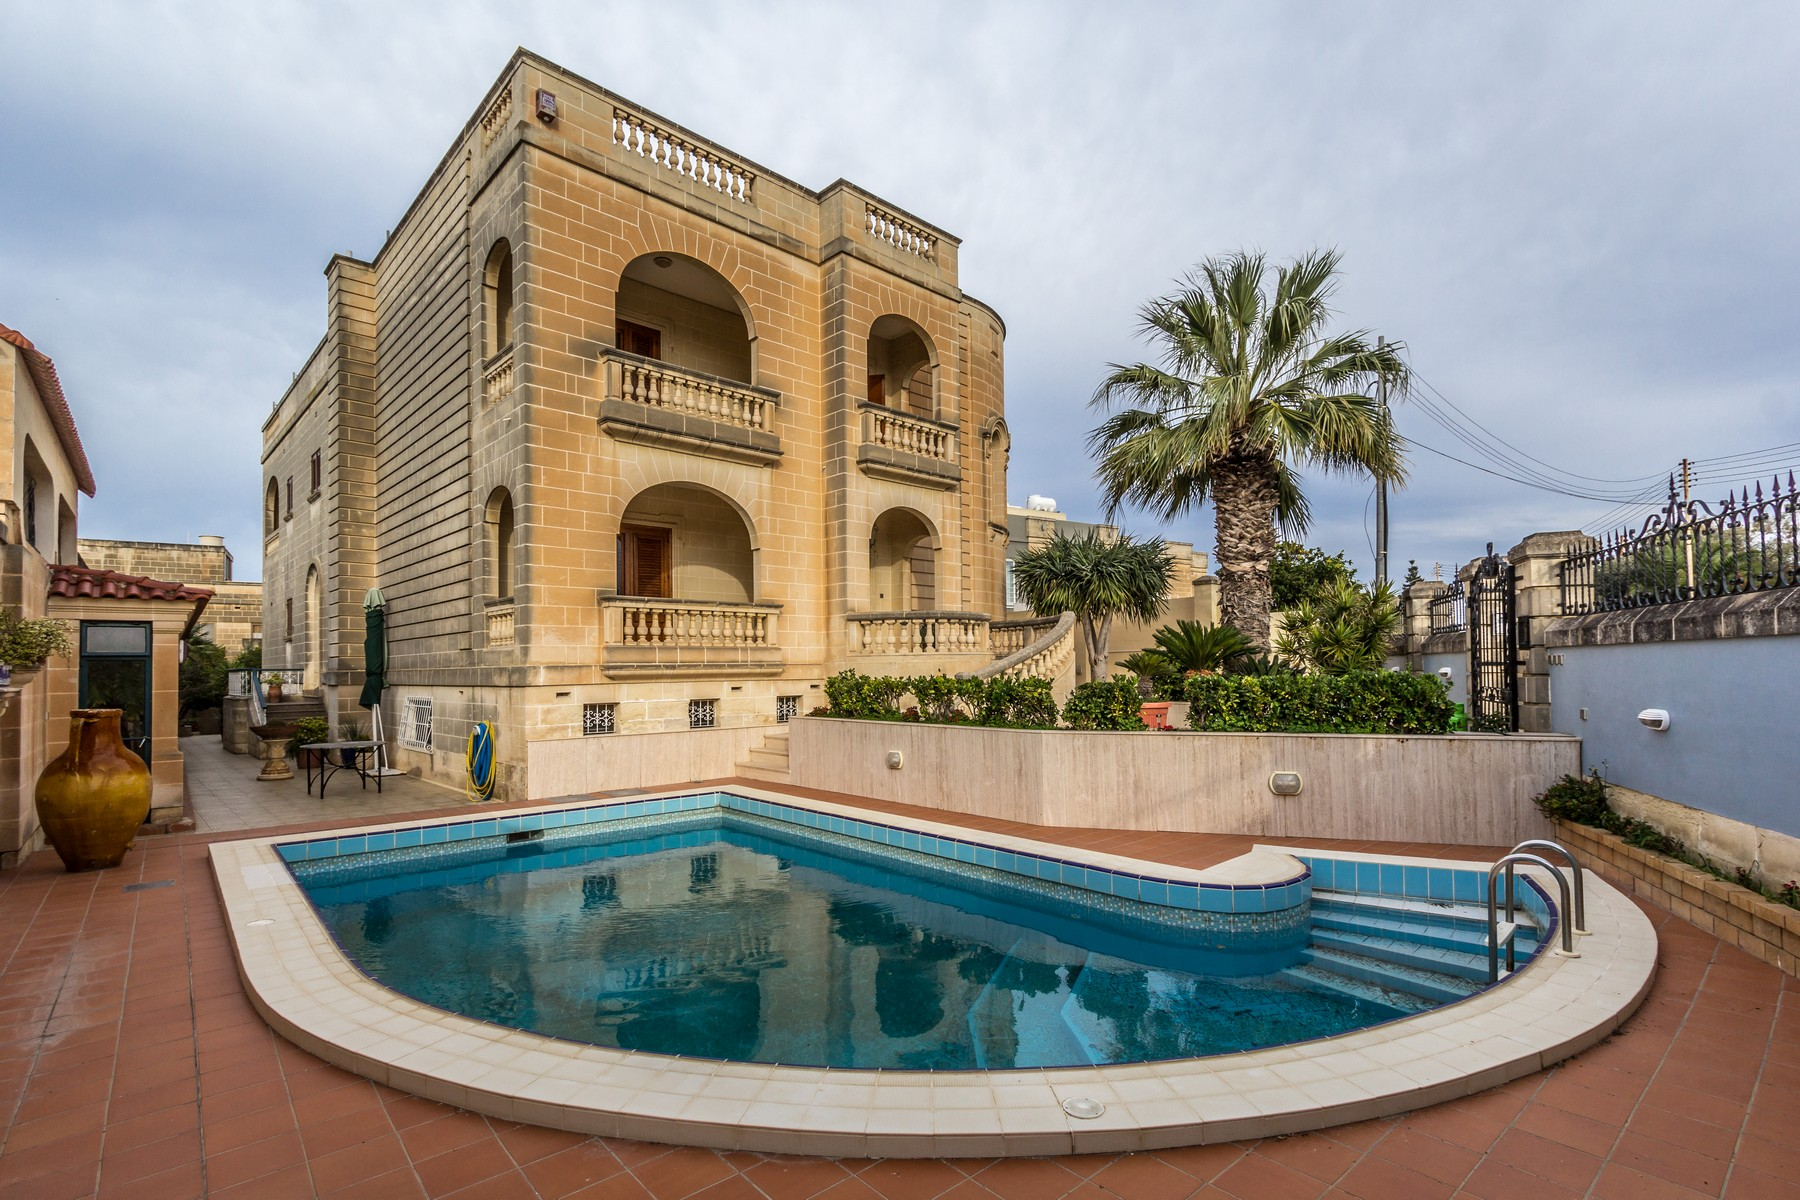 Single Family Home for Sale at Detached Villa Attard, Malta